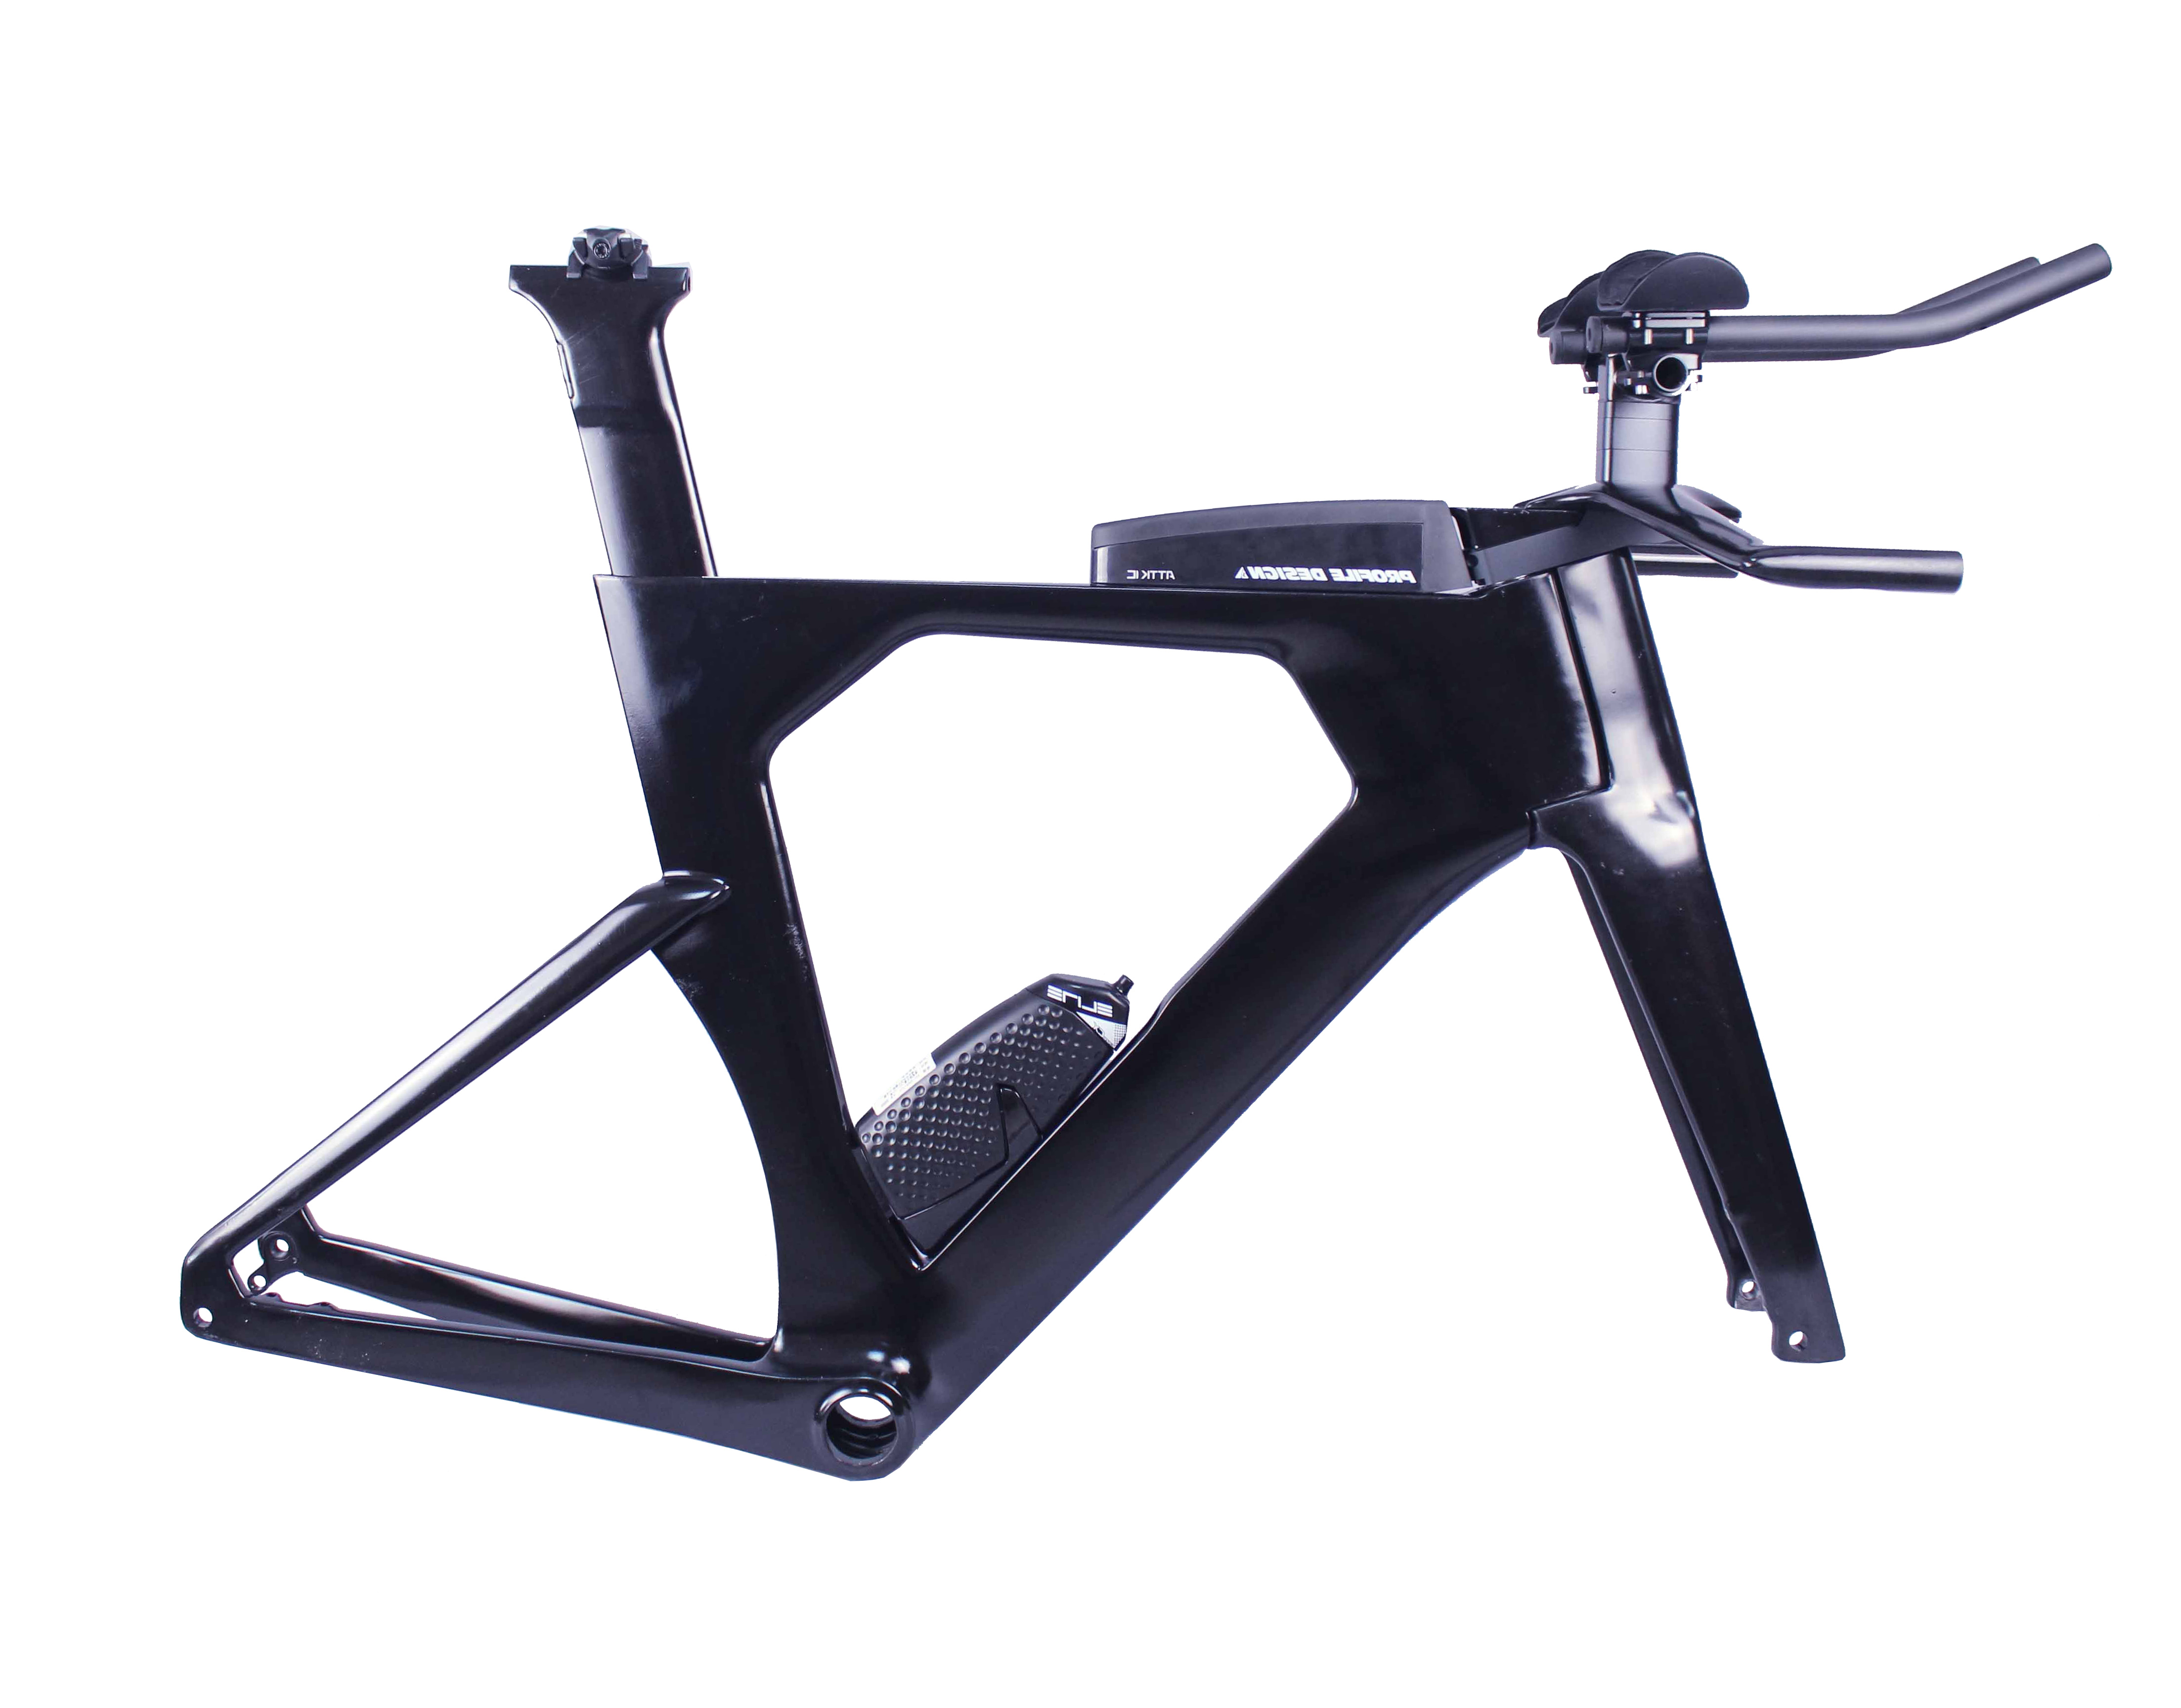 lightcarbon new disc TT frameset